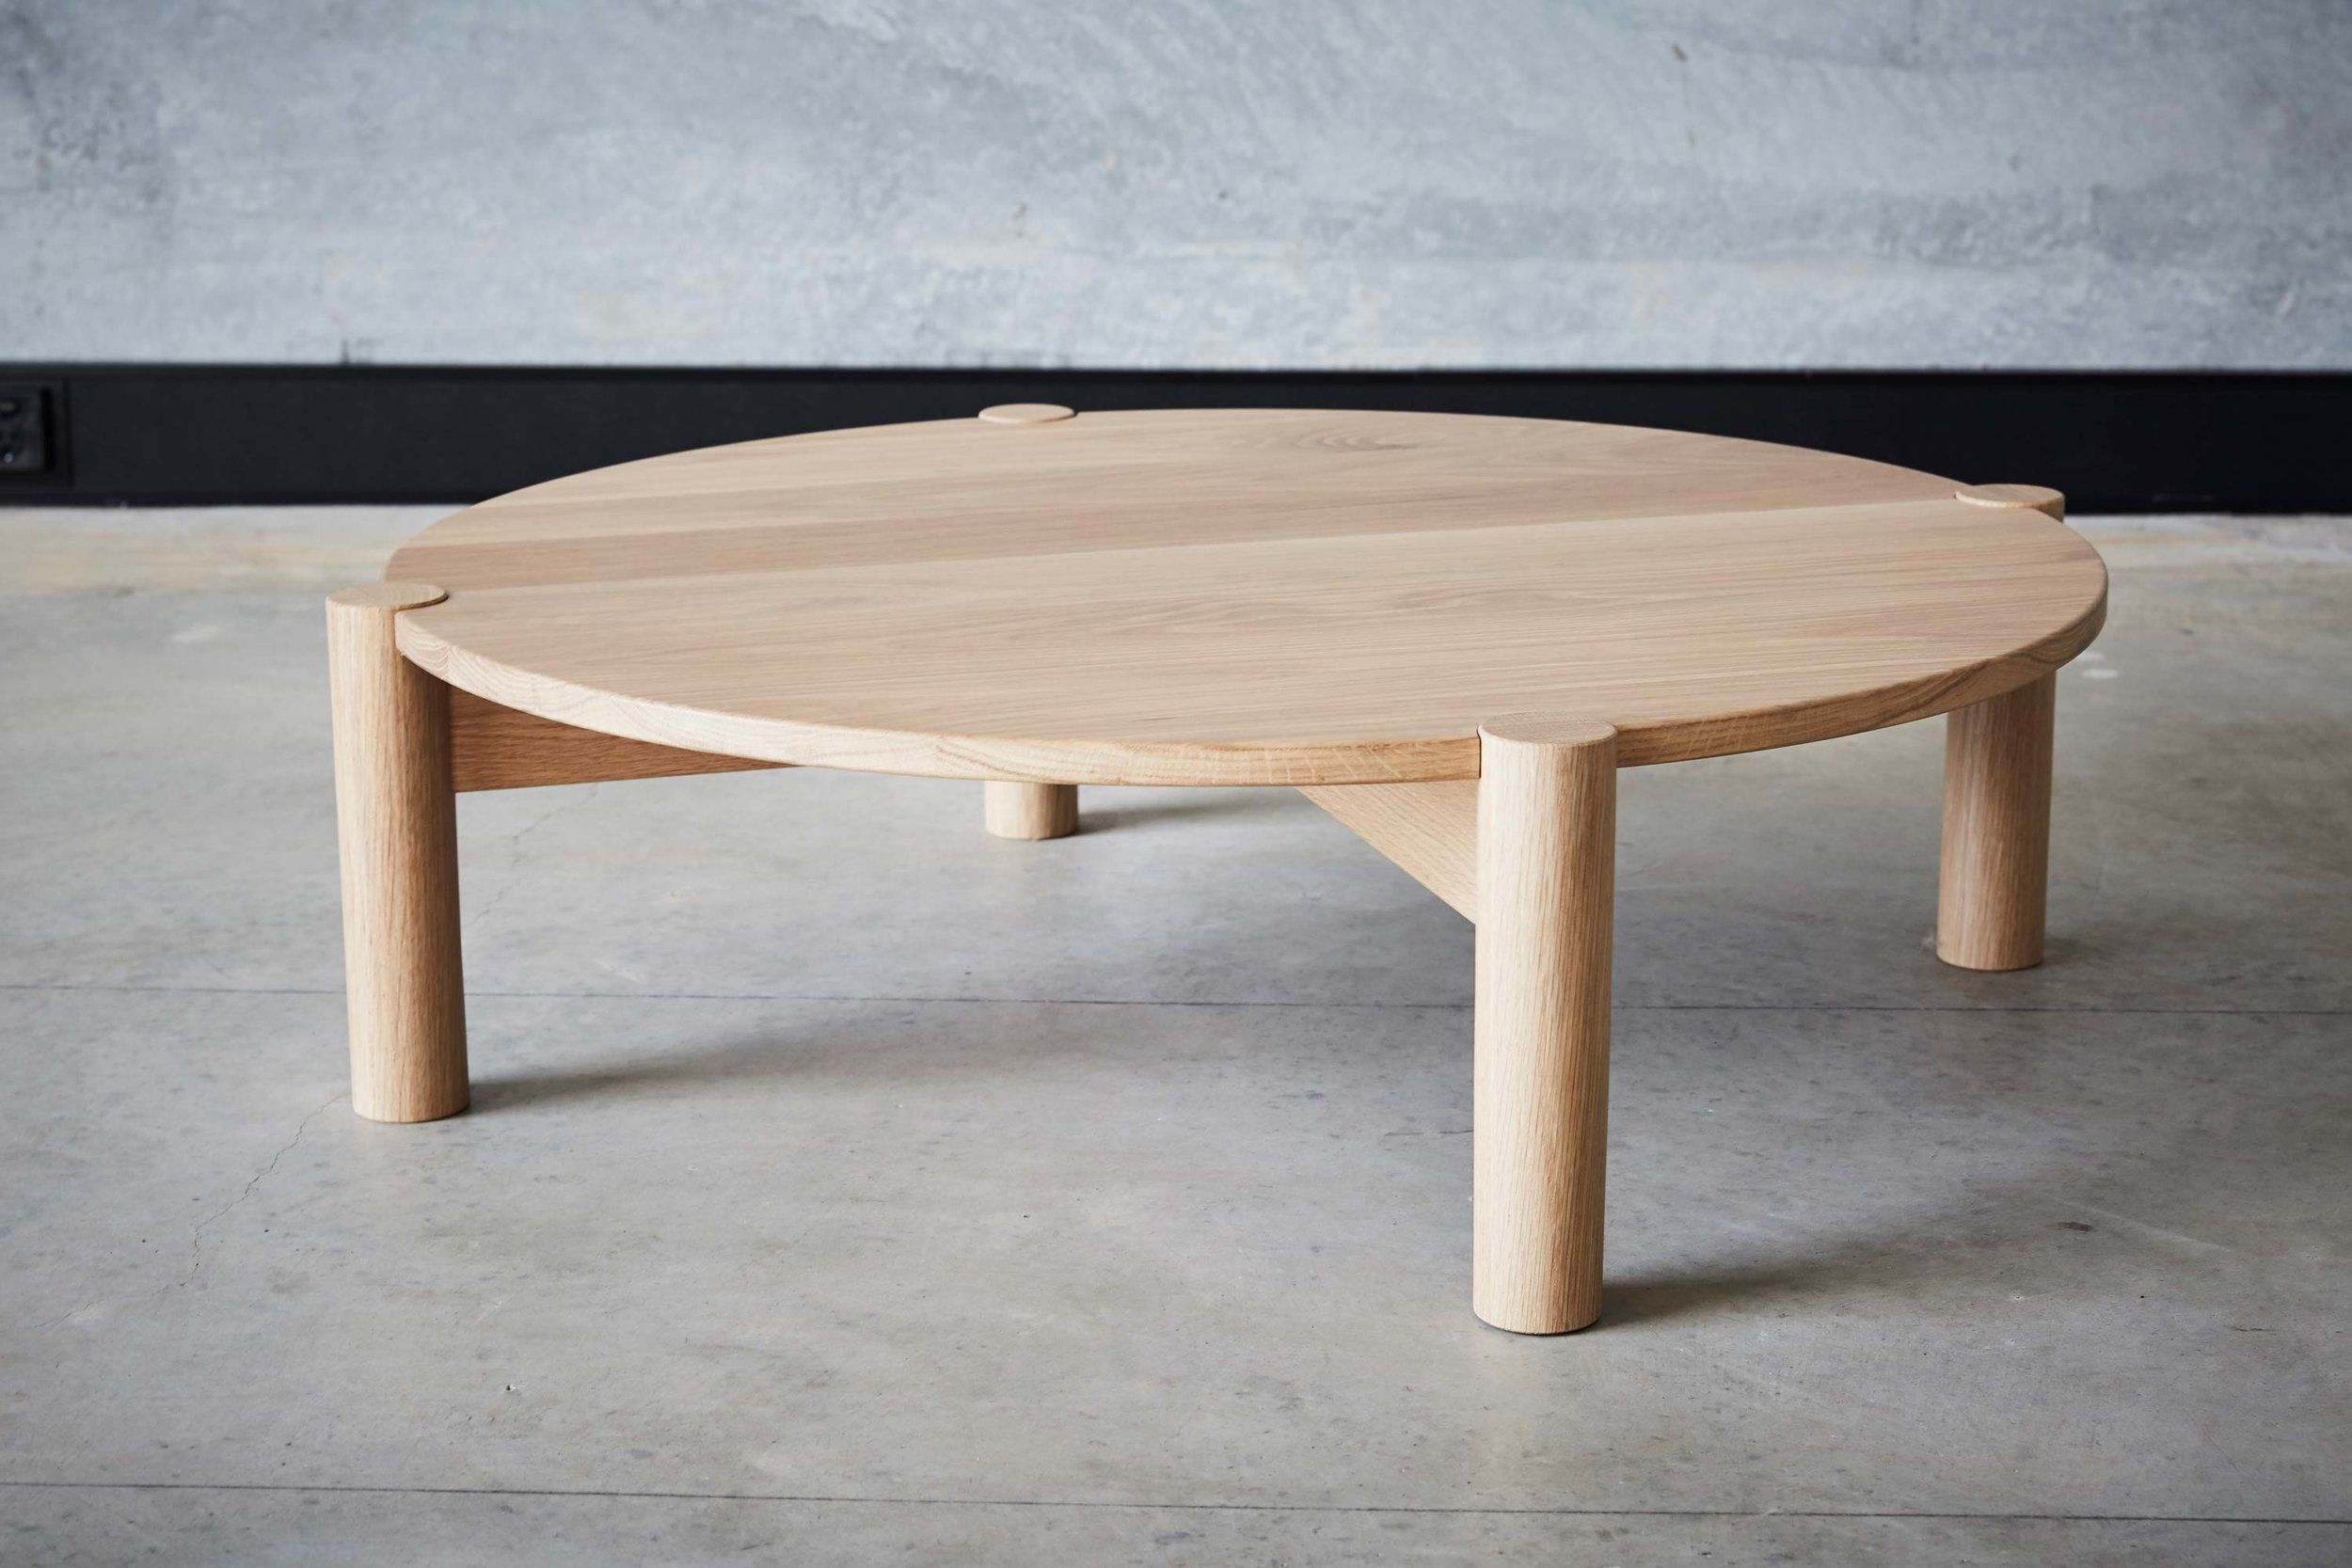 Pin By Melissa Herrera On Mesa De Centro Coffee Table Home Coffee Tables Furniture [ 1667 x 2500 Pixel ]